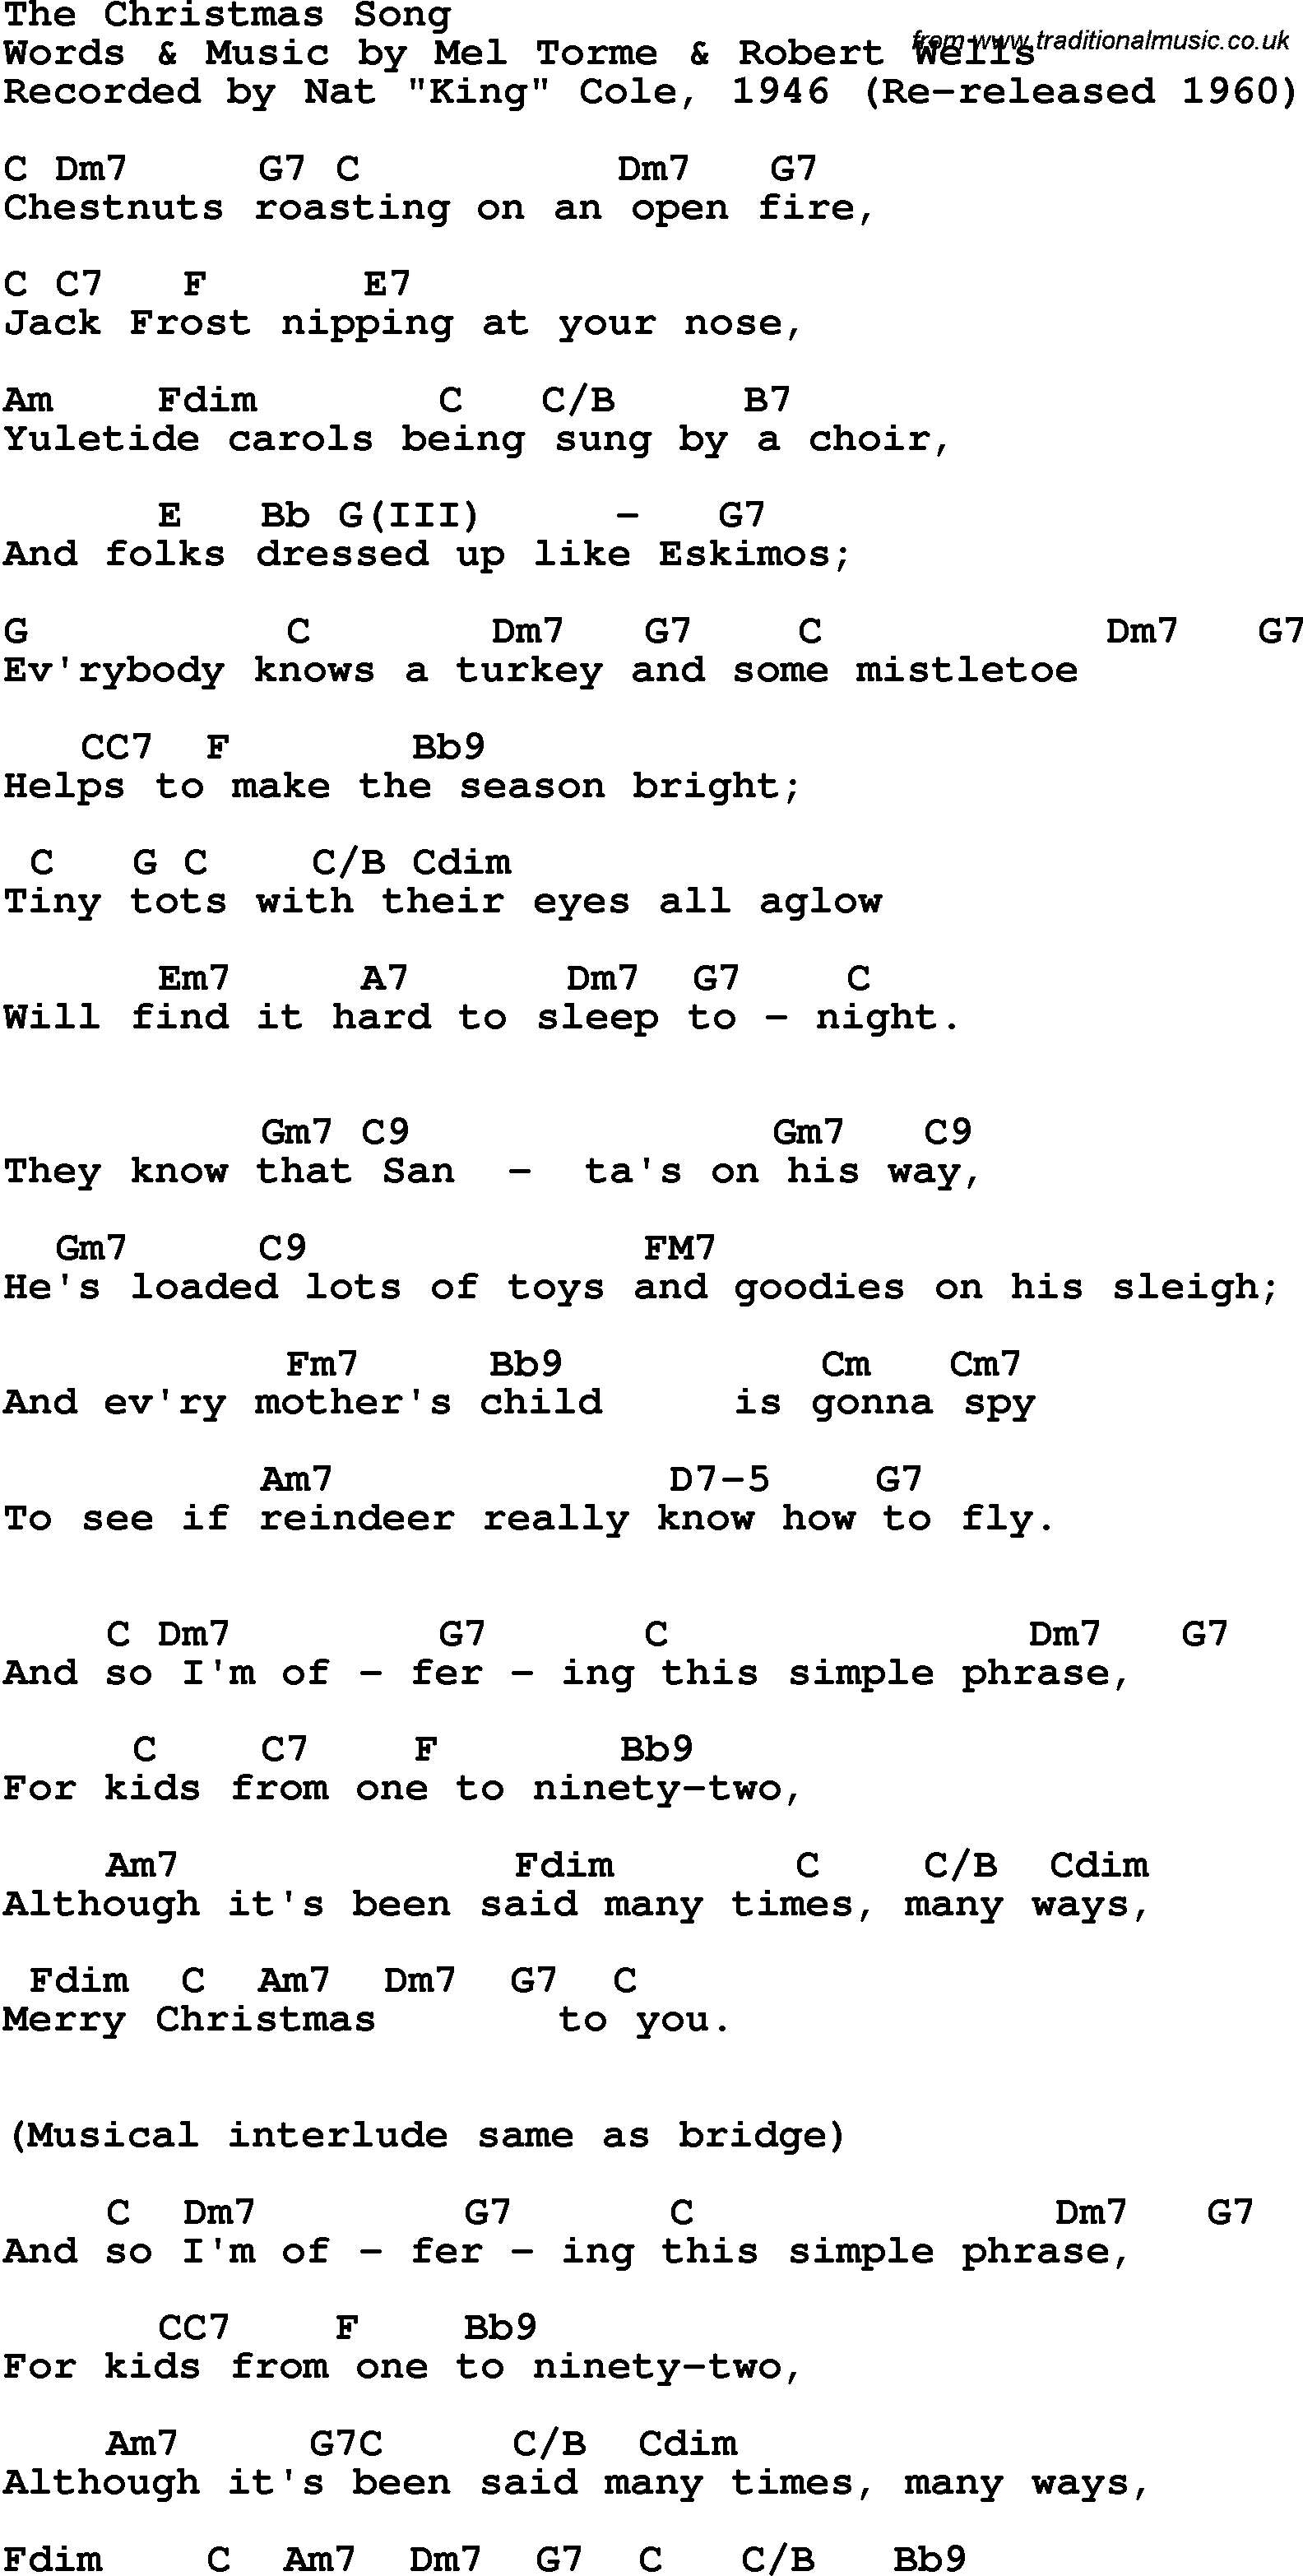 Song Lyrics With Guitar Chords For Christmas Song The Nat King